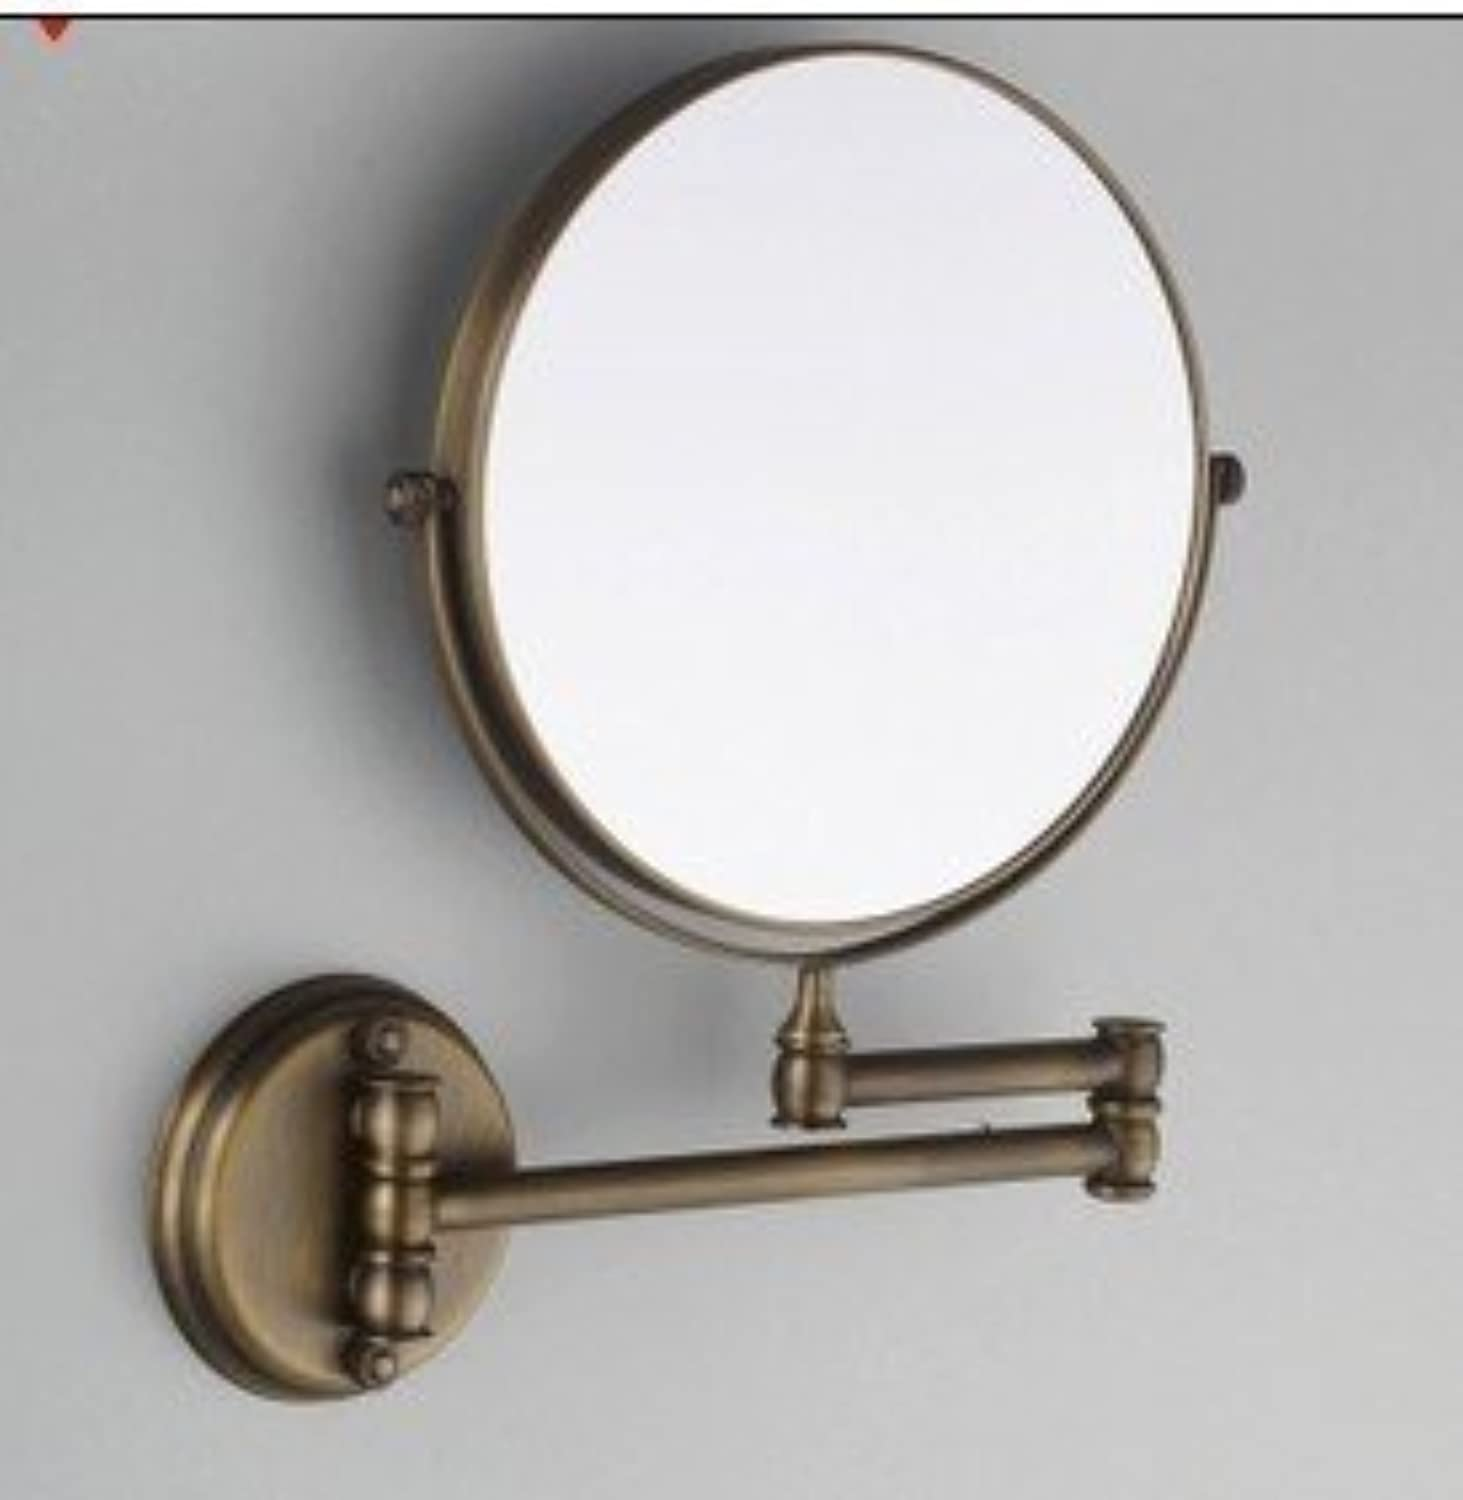 Wall Mirrors 8In two-sided Mirror The Magnifying Glass beauty mirror